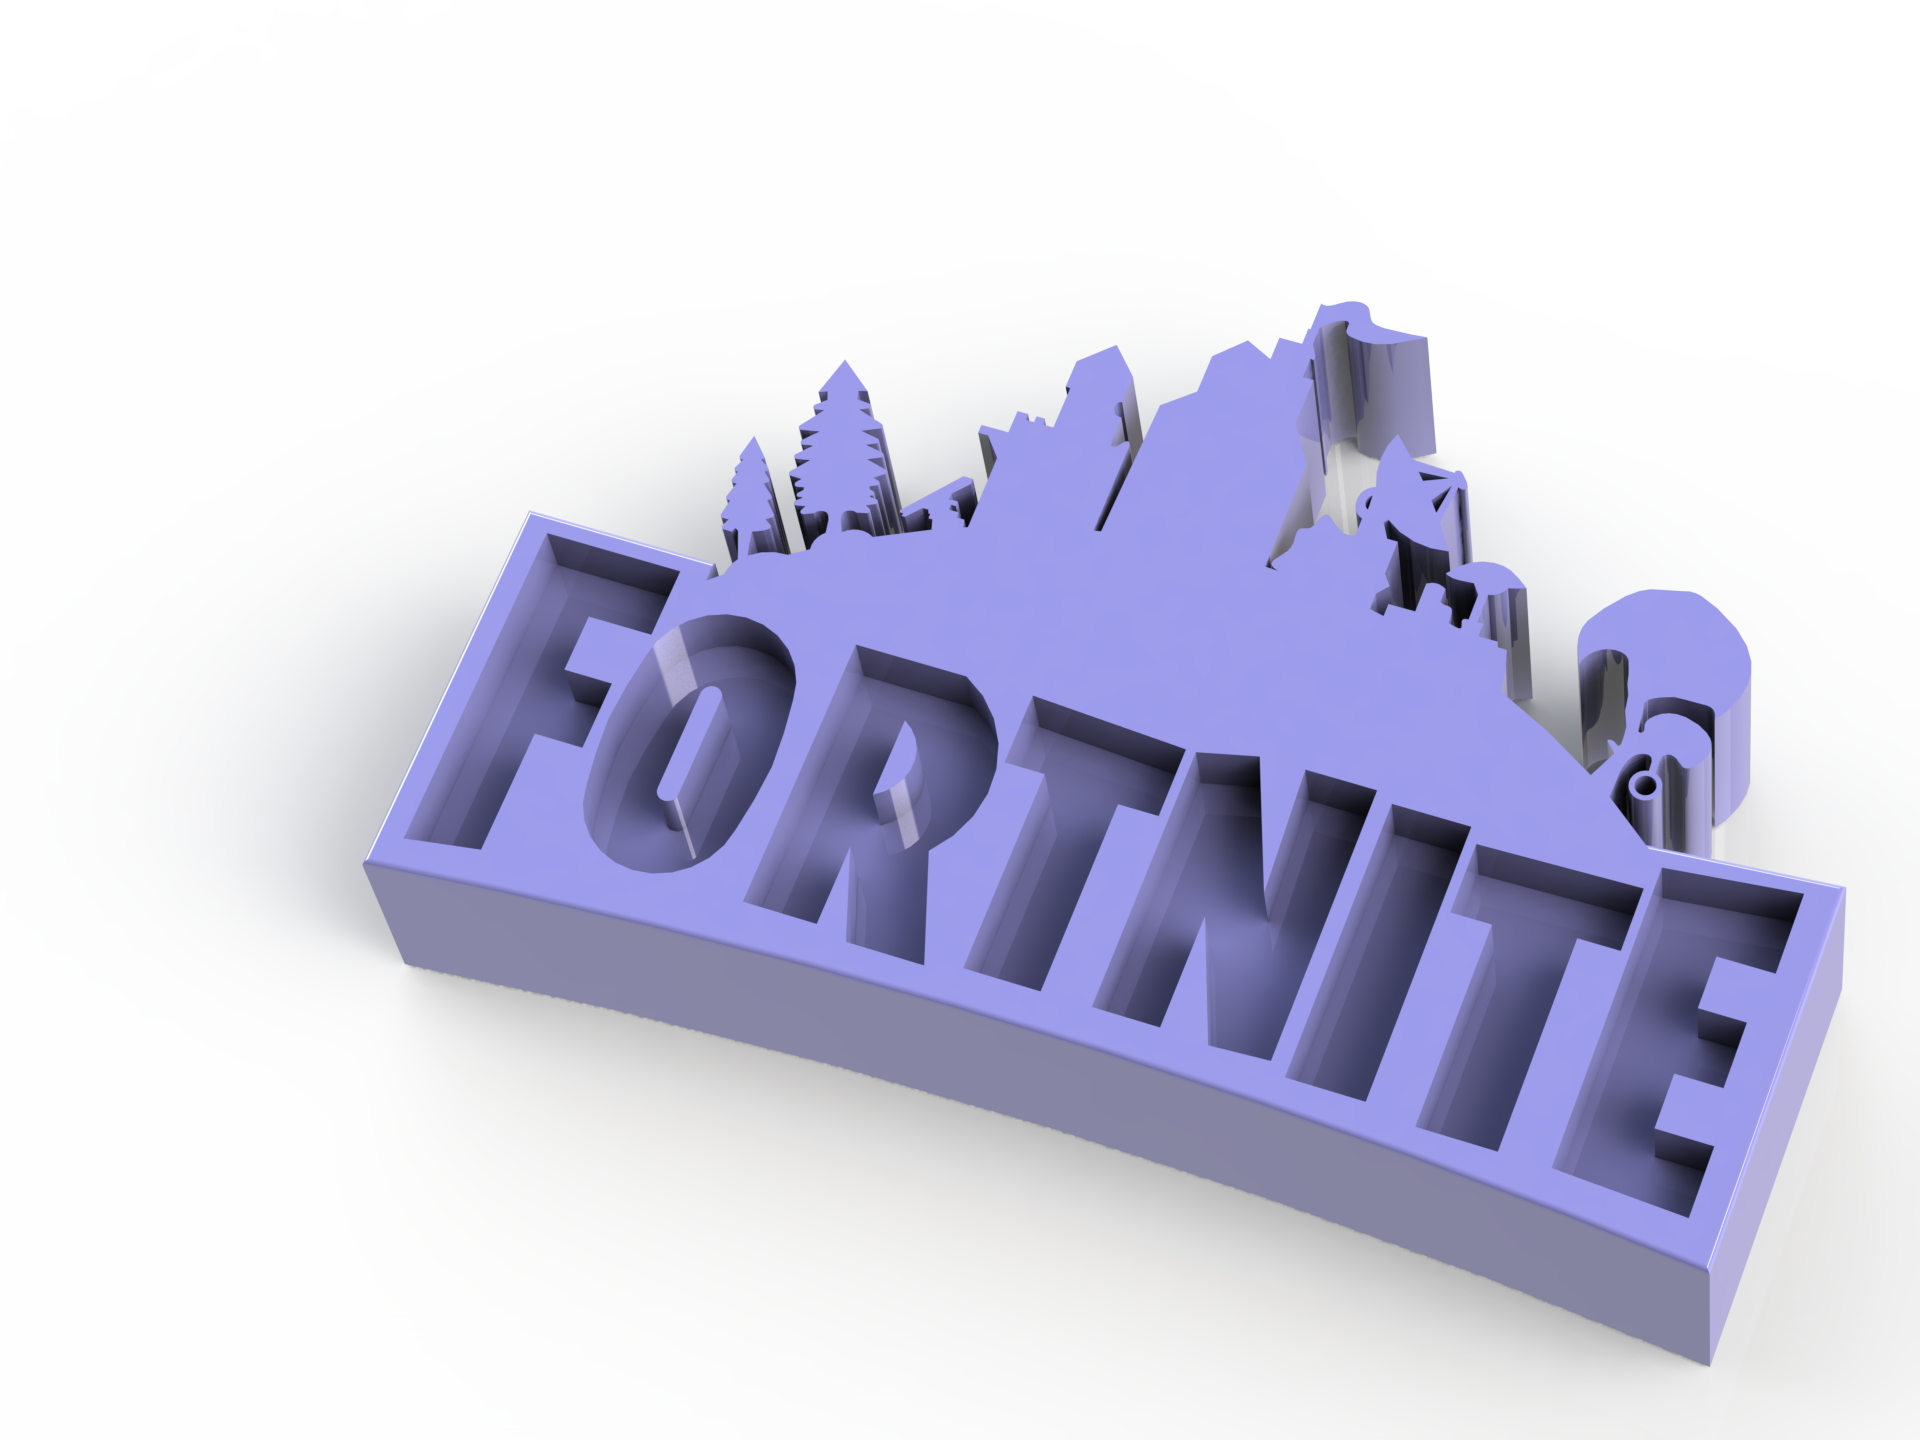 Download Stl File Fortnite Logo 3d Printing Template Cults Fortnite logo png no text | fortnite free mobile game, free portable network graphics (png) archive. download stl file fortnite logo 3d